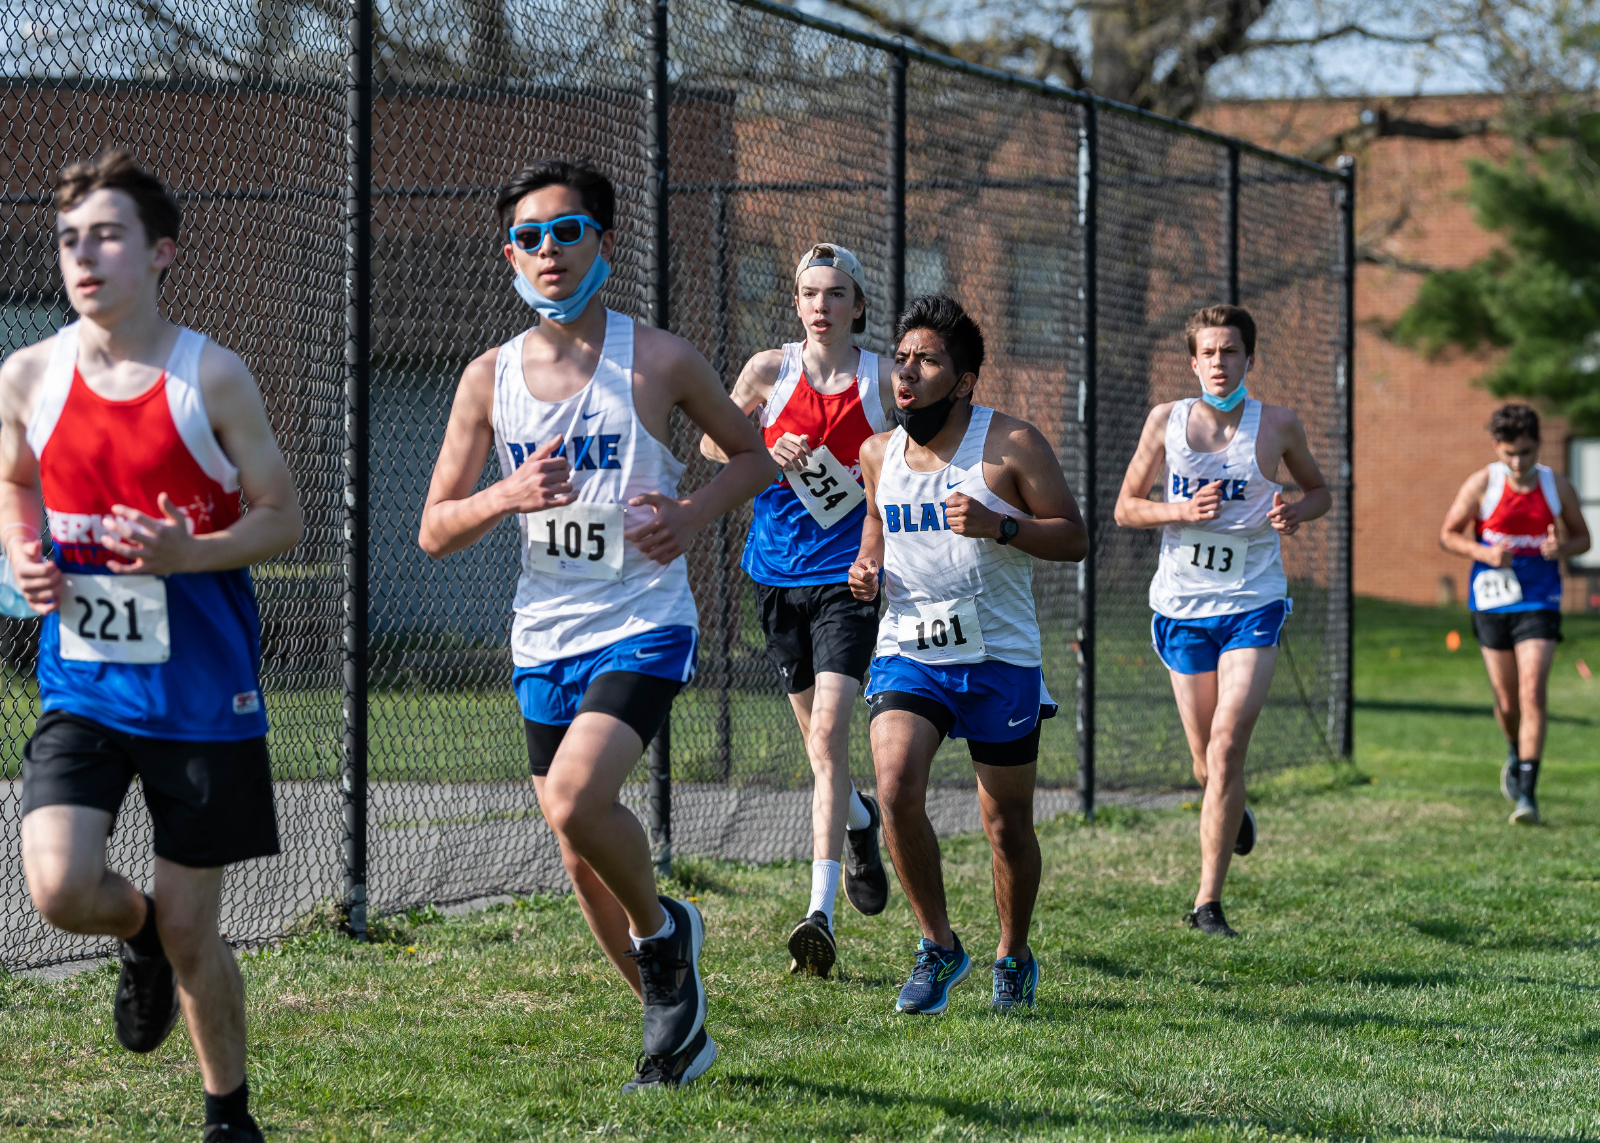 Boys Cross Country Photos – 4/8/21 at Sherwood